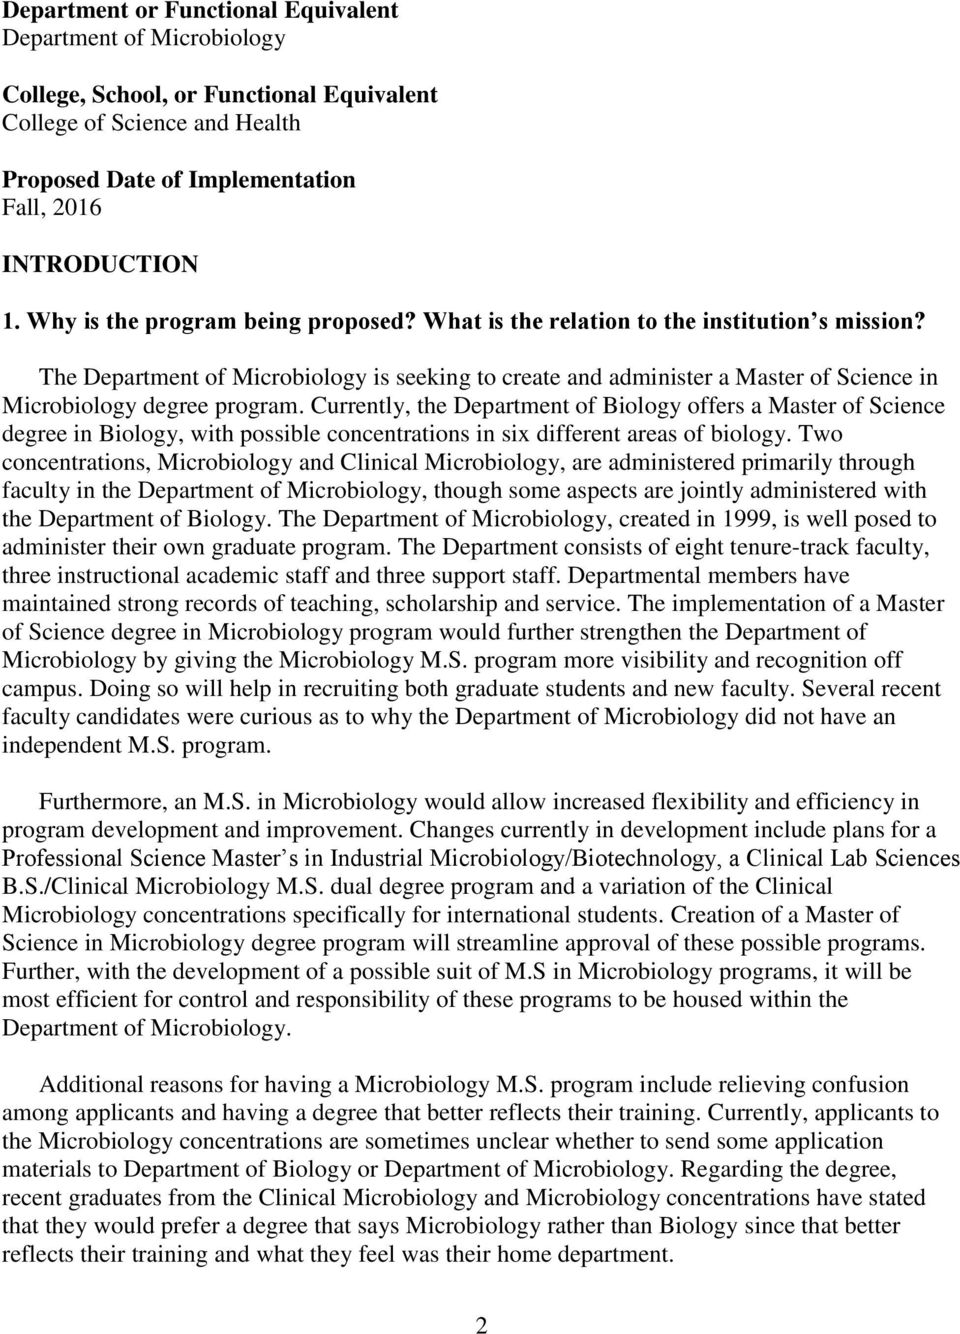 The Department of Microbiology is seeking to create and administer a Master of Science in Microbiology degree program.